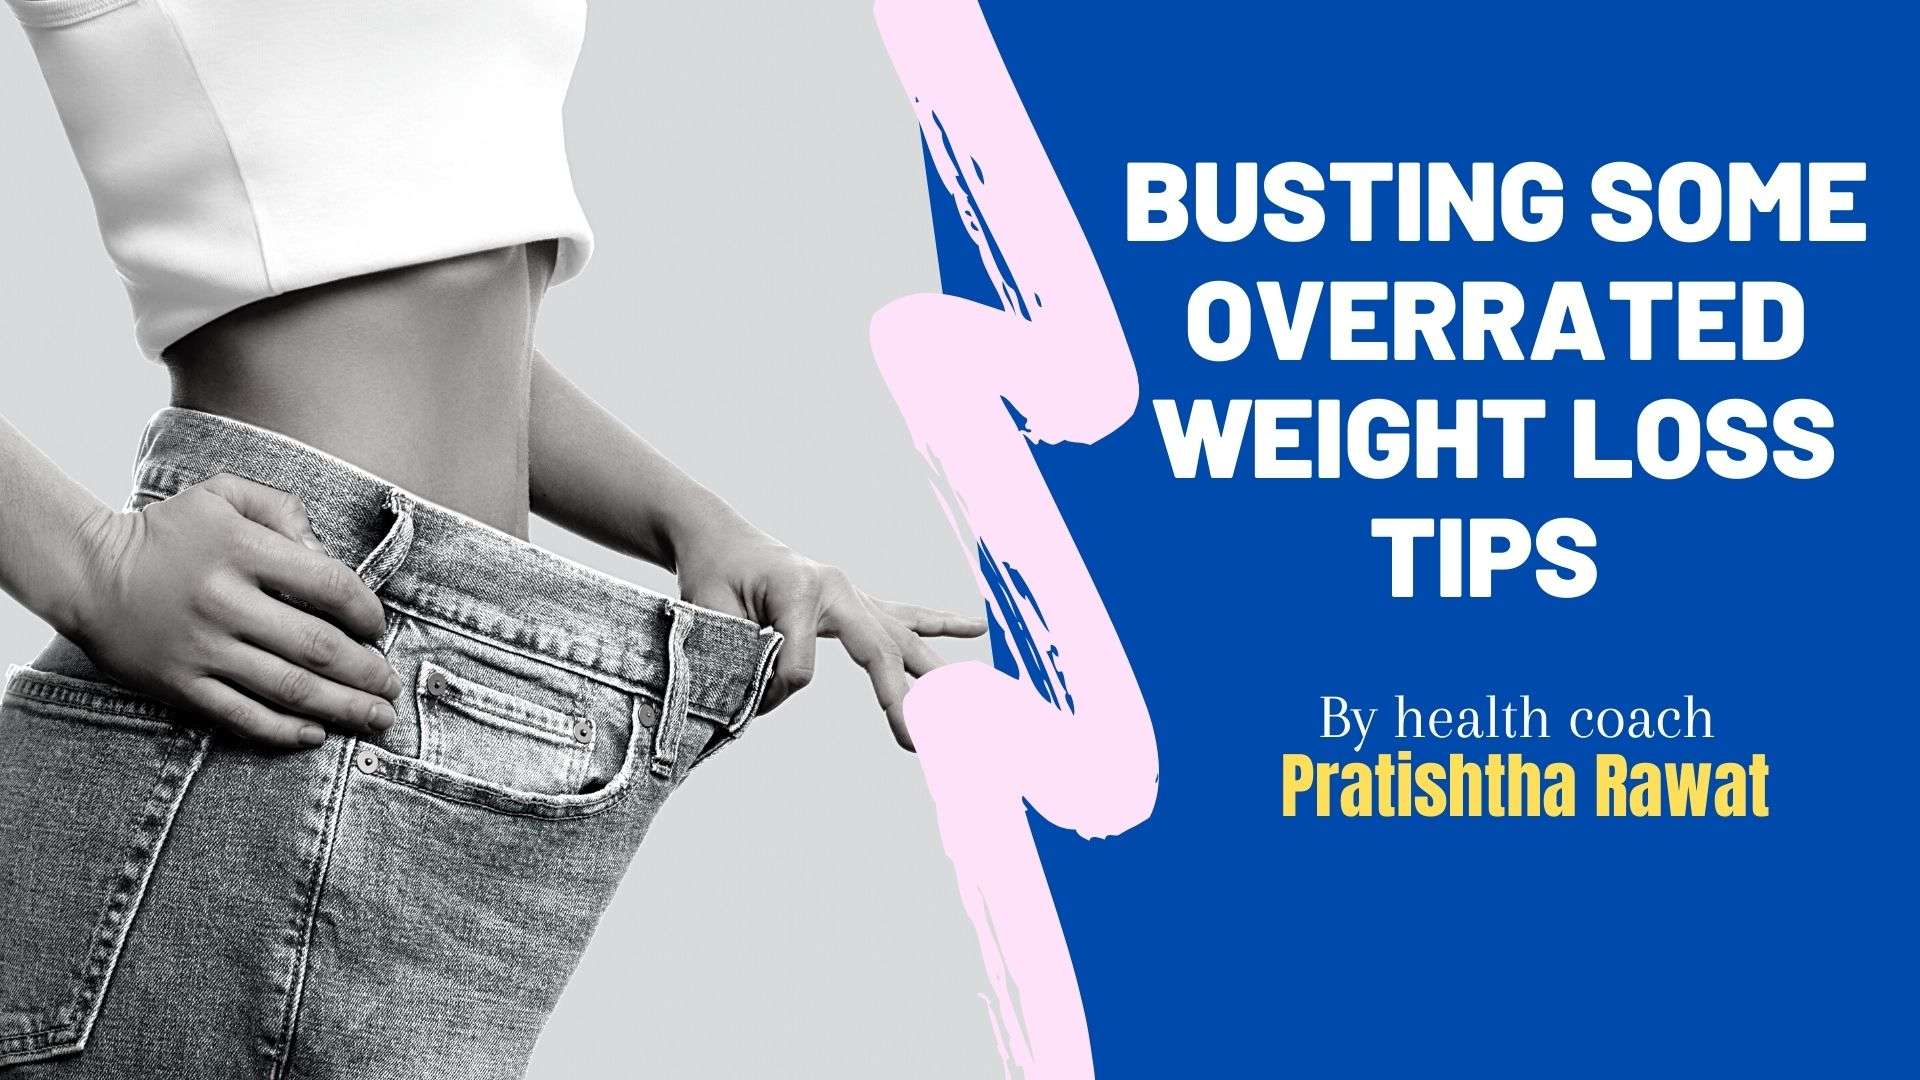 busting-some-overrated-weight-loss-tips-by-health-coach-pratishtha-rawat